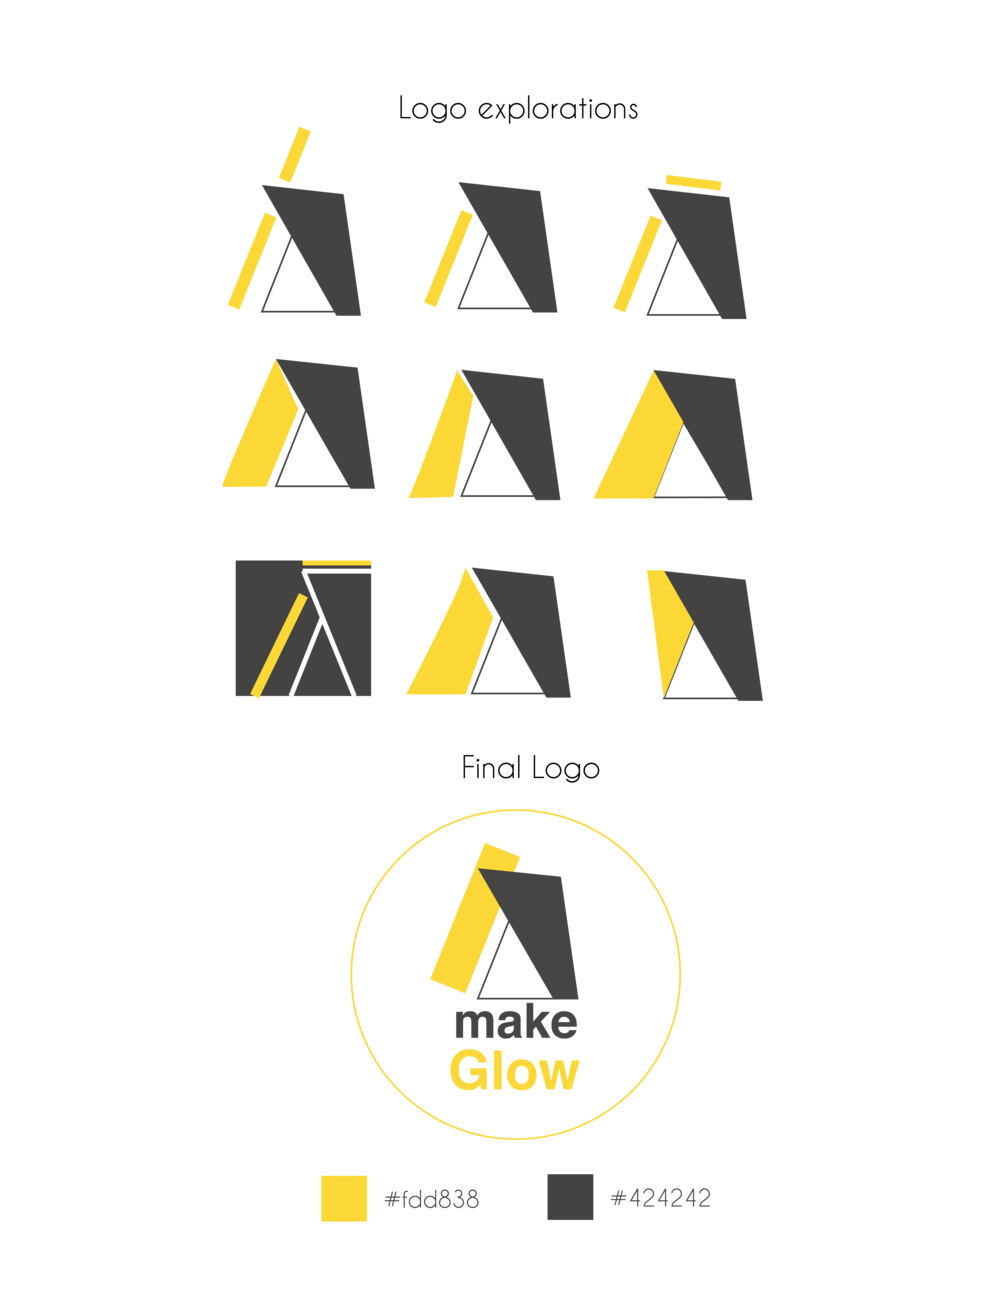 logo-makeglow-progress.png